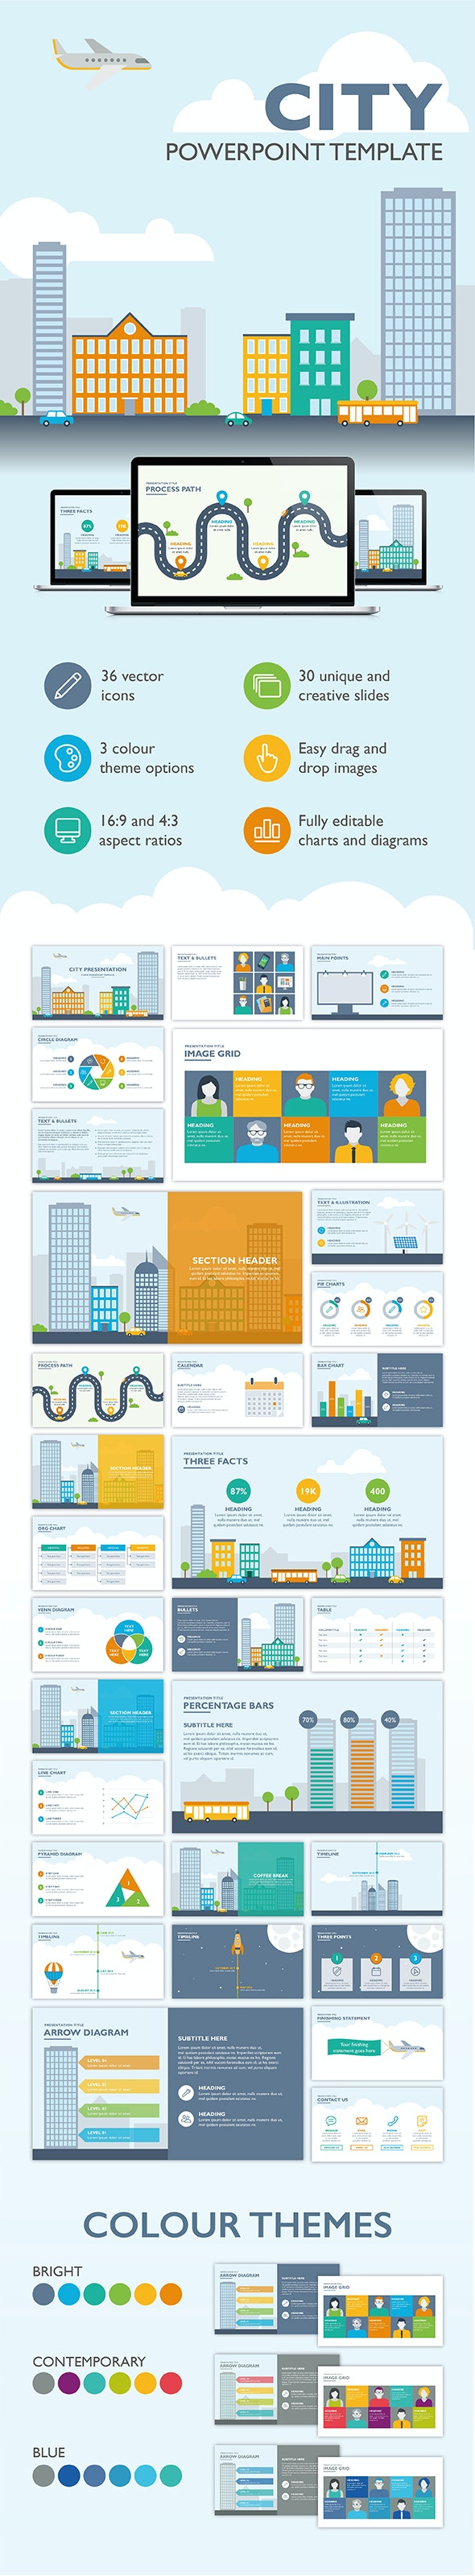 City PowerPoint Template - PowerPoint Templates Presentation Templates